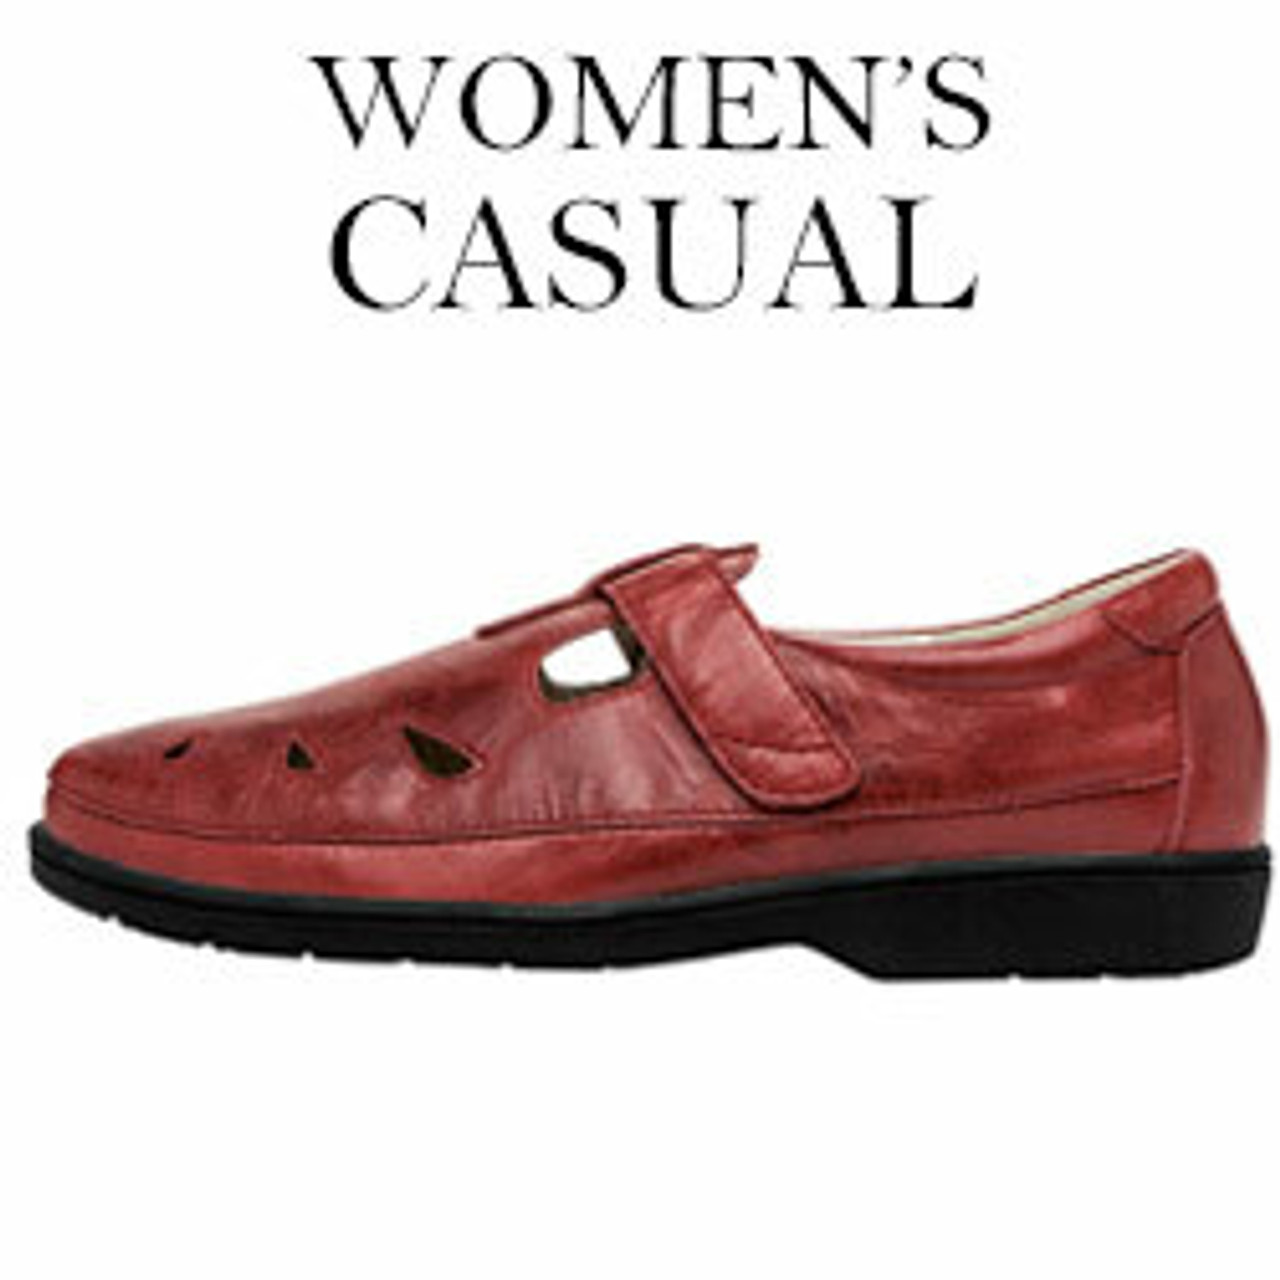 Orthopedic Casual Shoes For Women